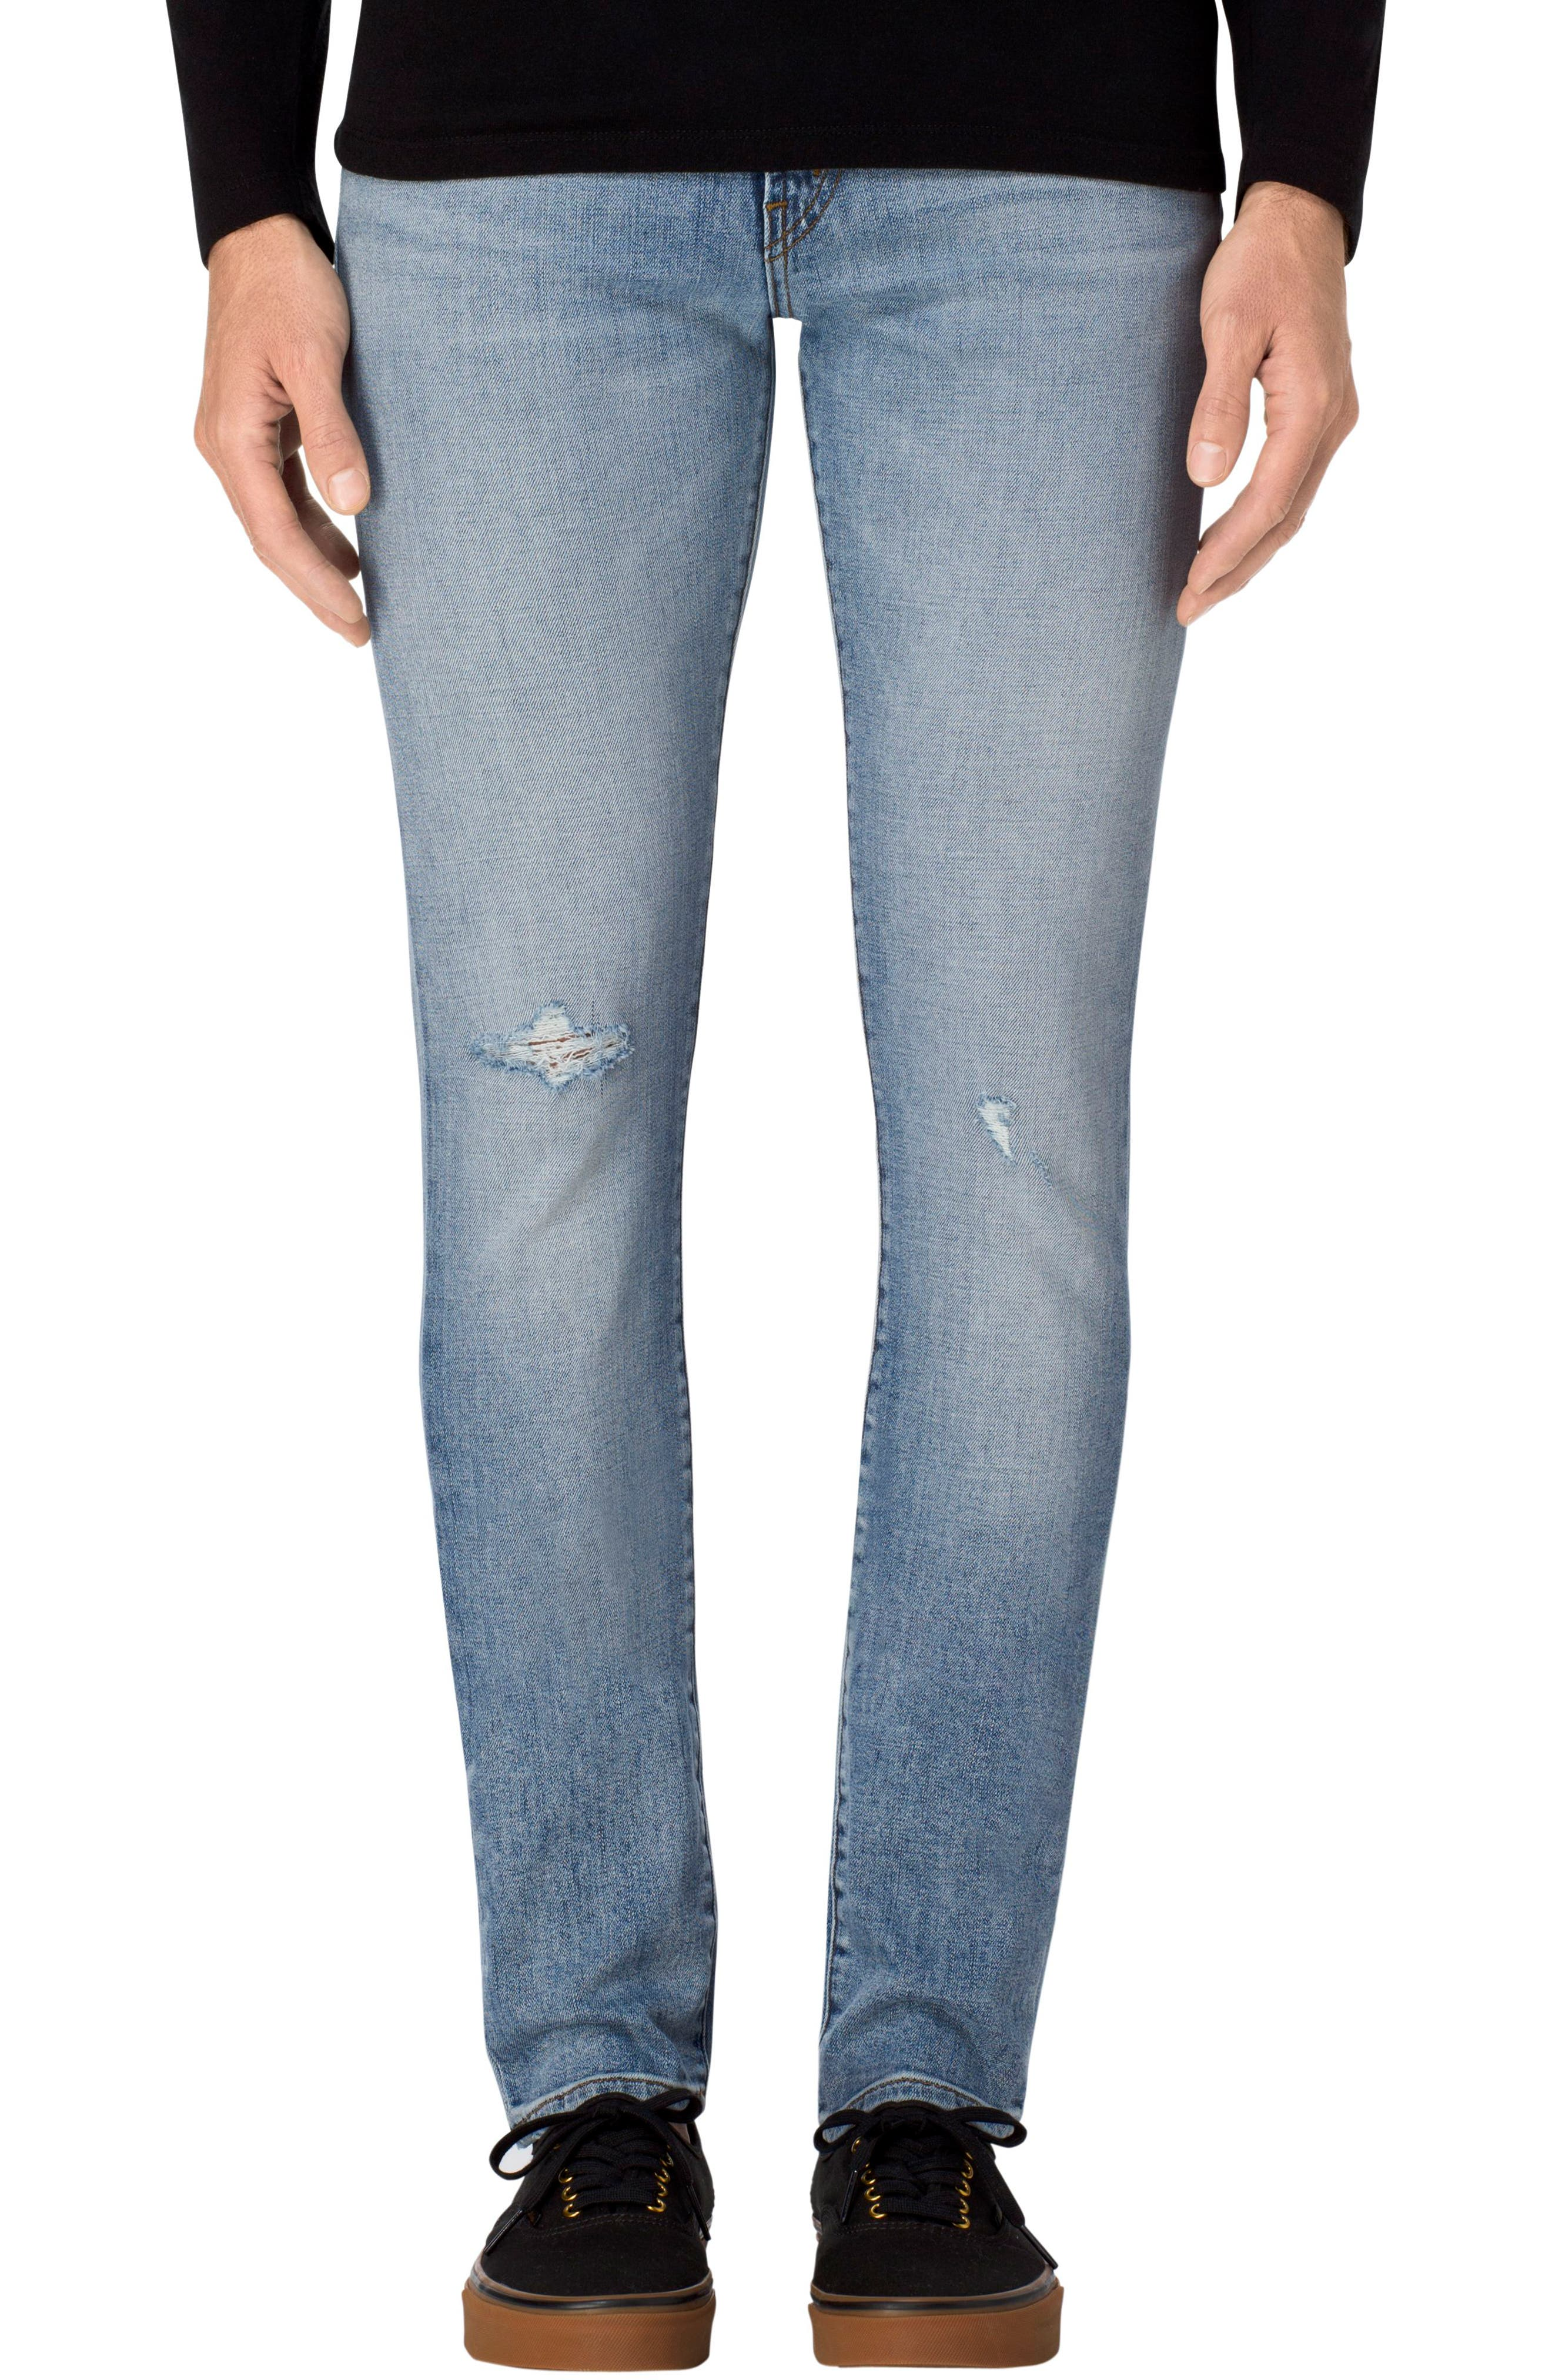 Mick Skinny Fit Jeans,                         Main,                         color, Astroid